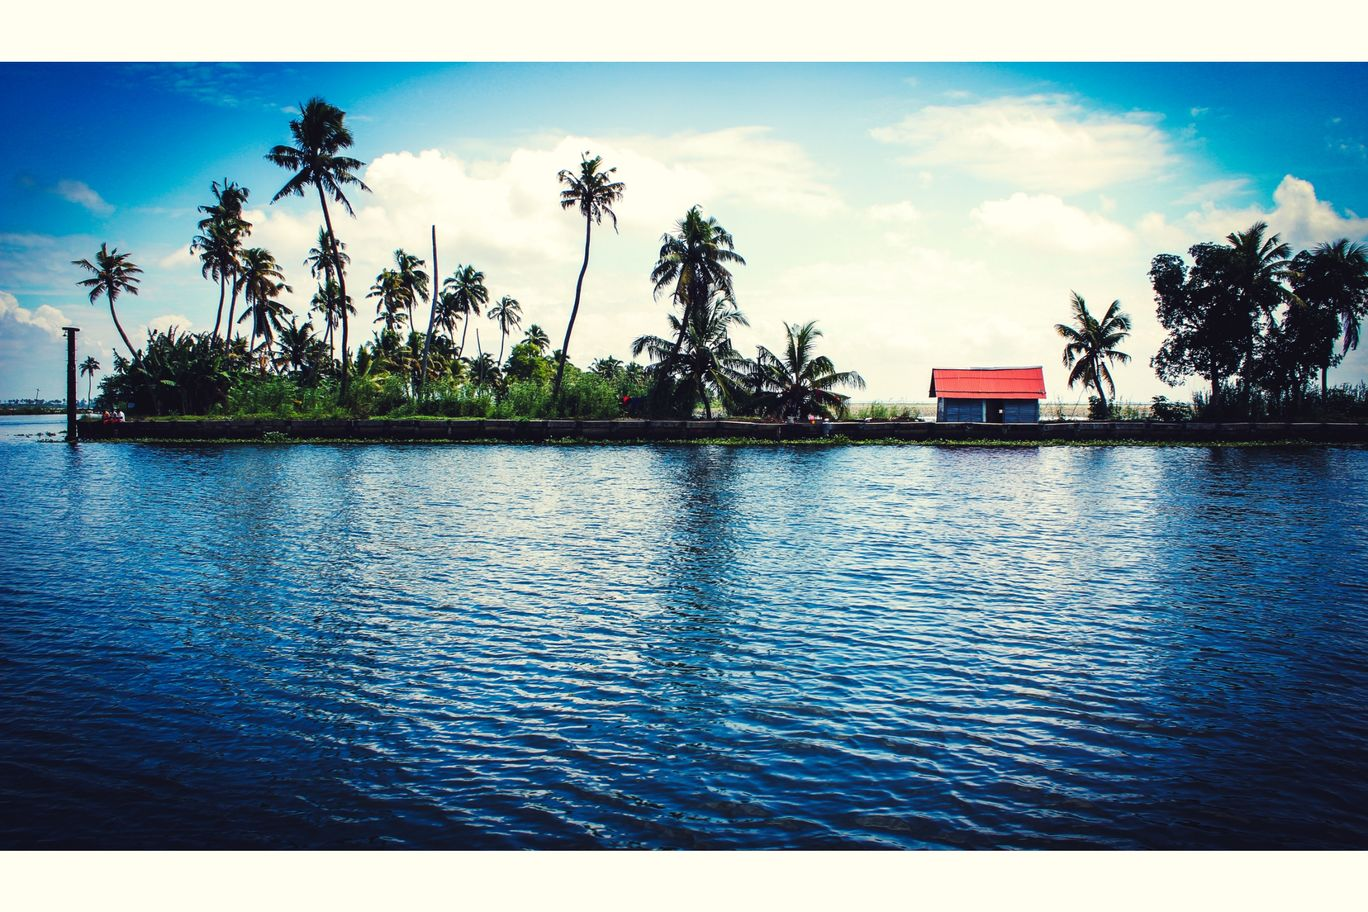 Photo of Kerala By Sumit Mathur